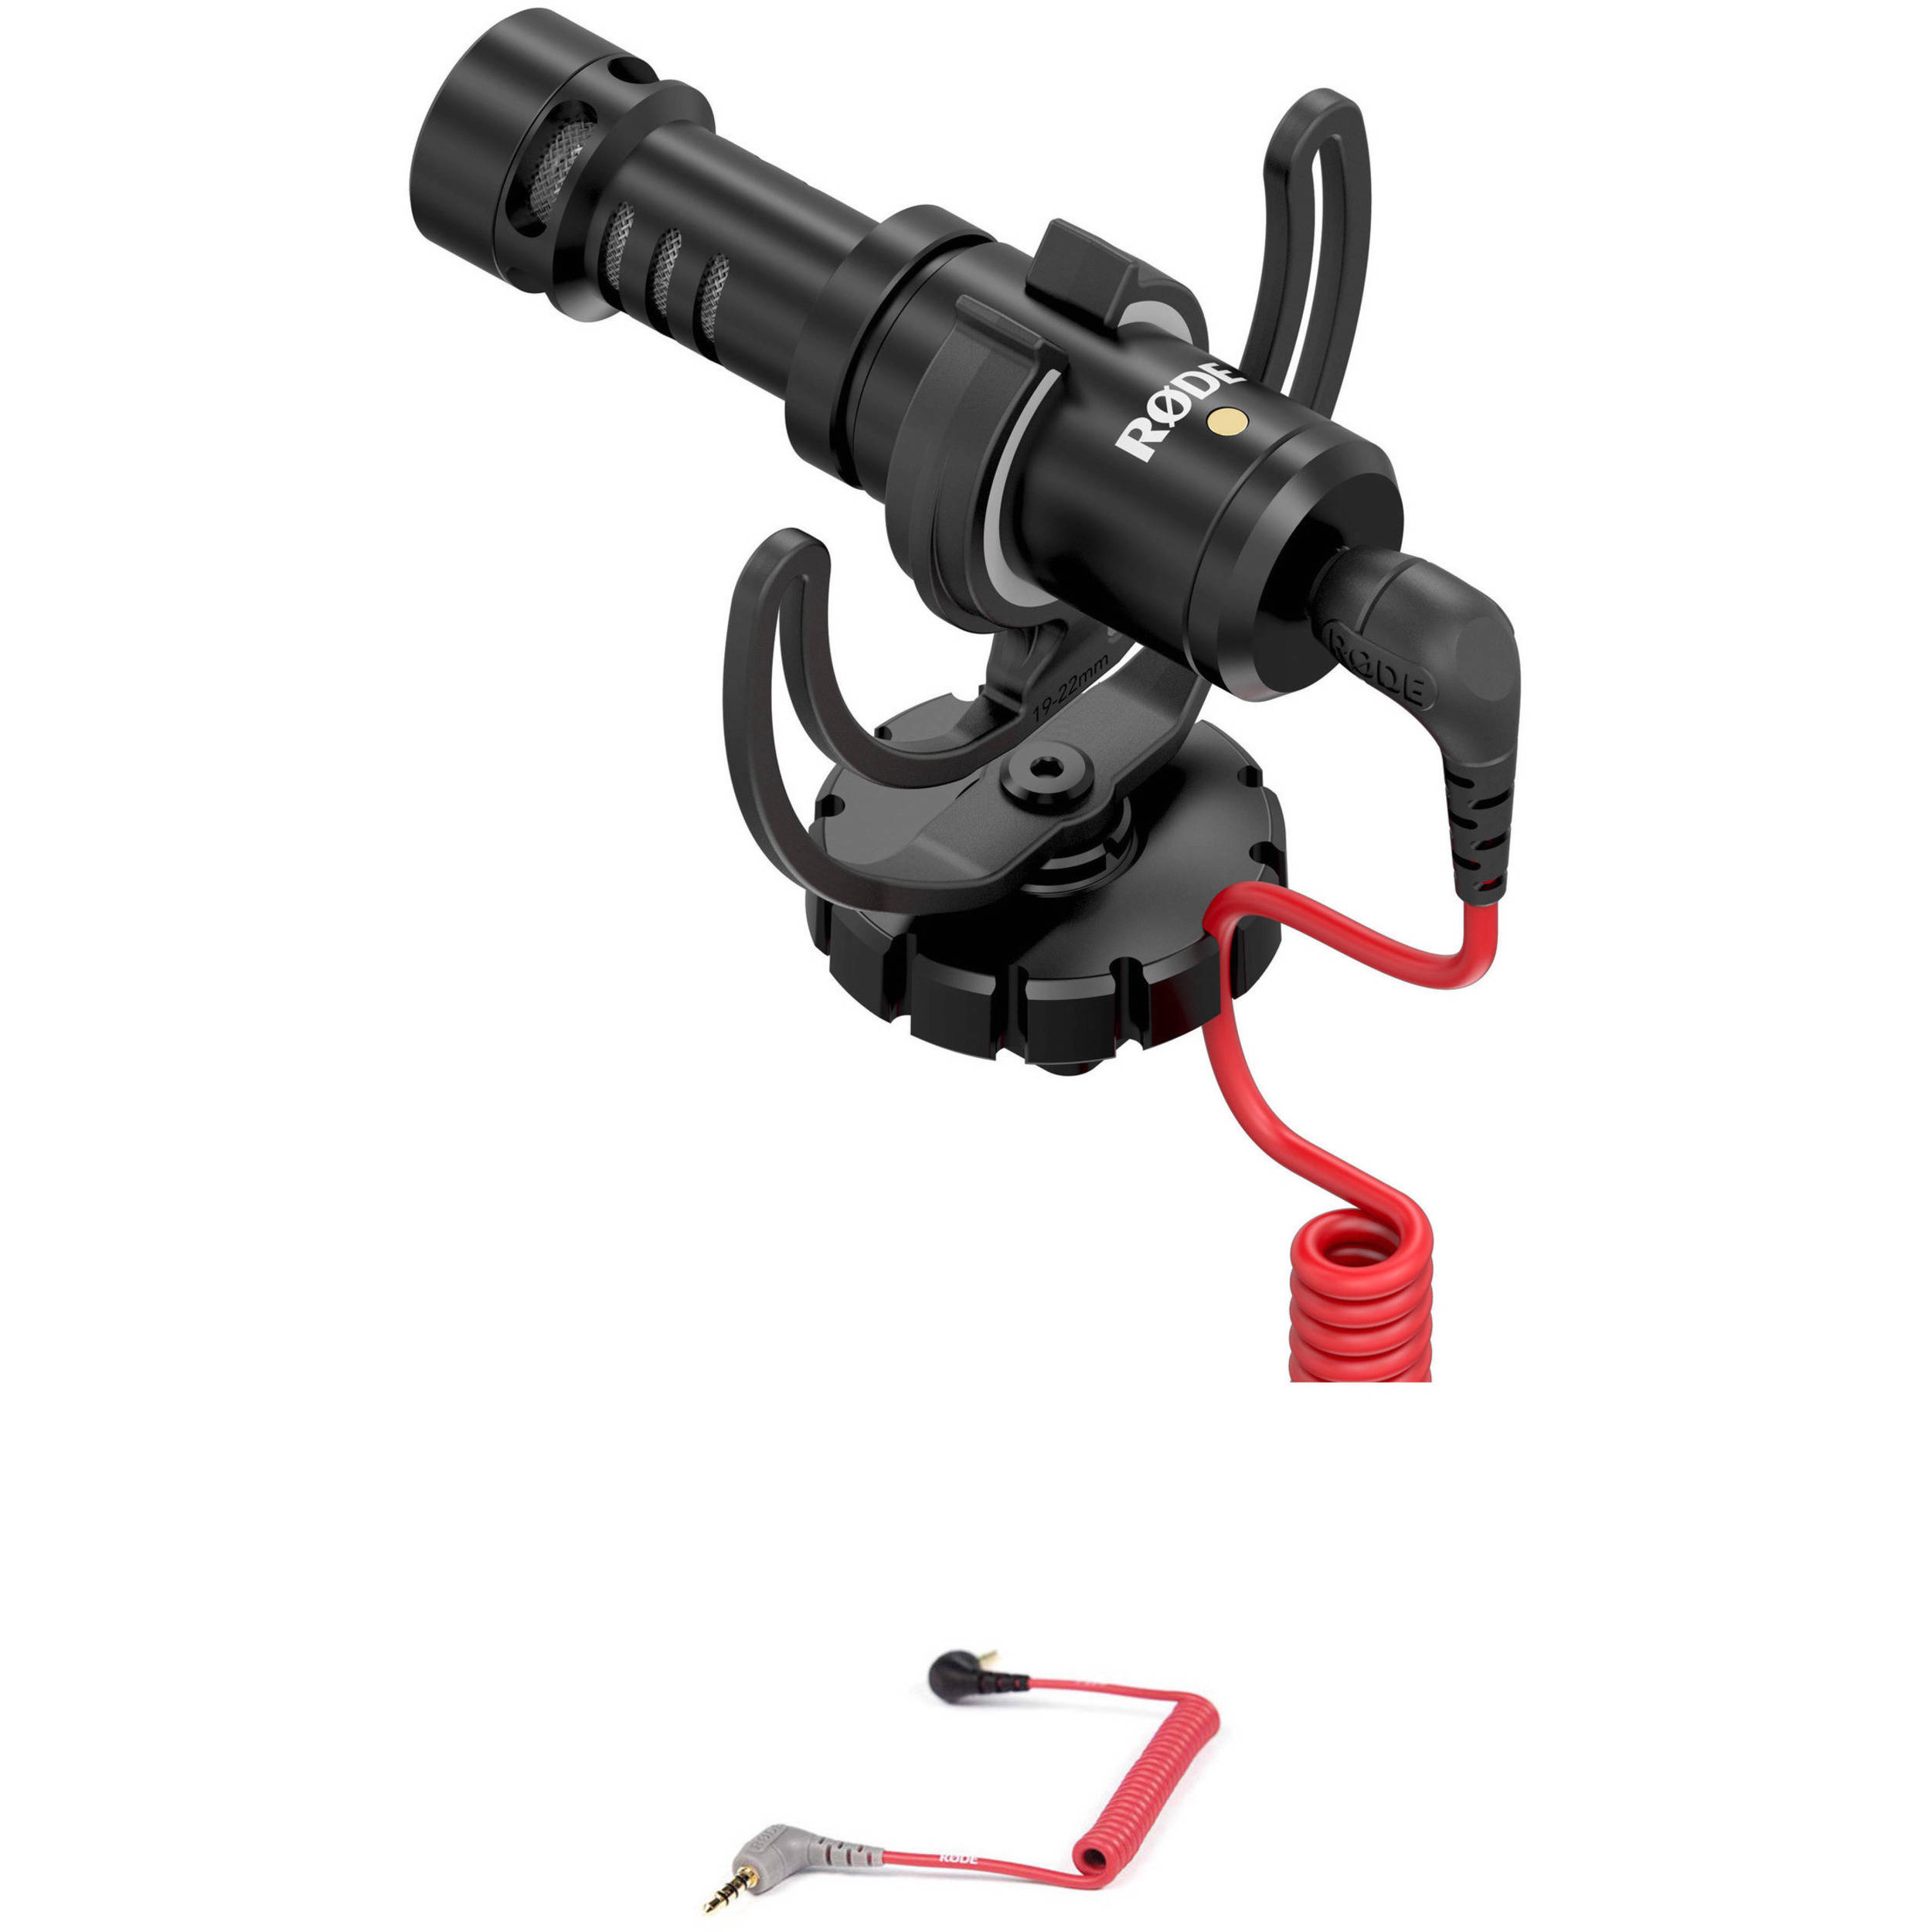 rode_videomicro_compact_on_camera_1377916.jpg